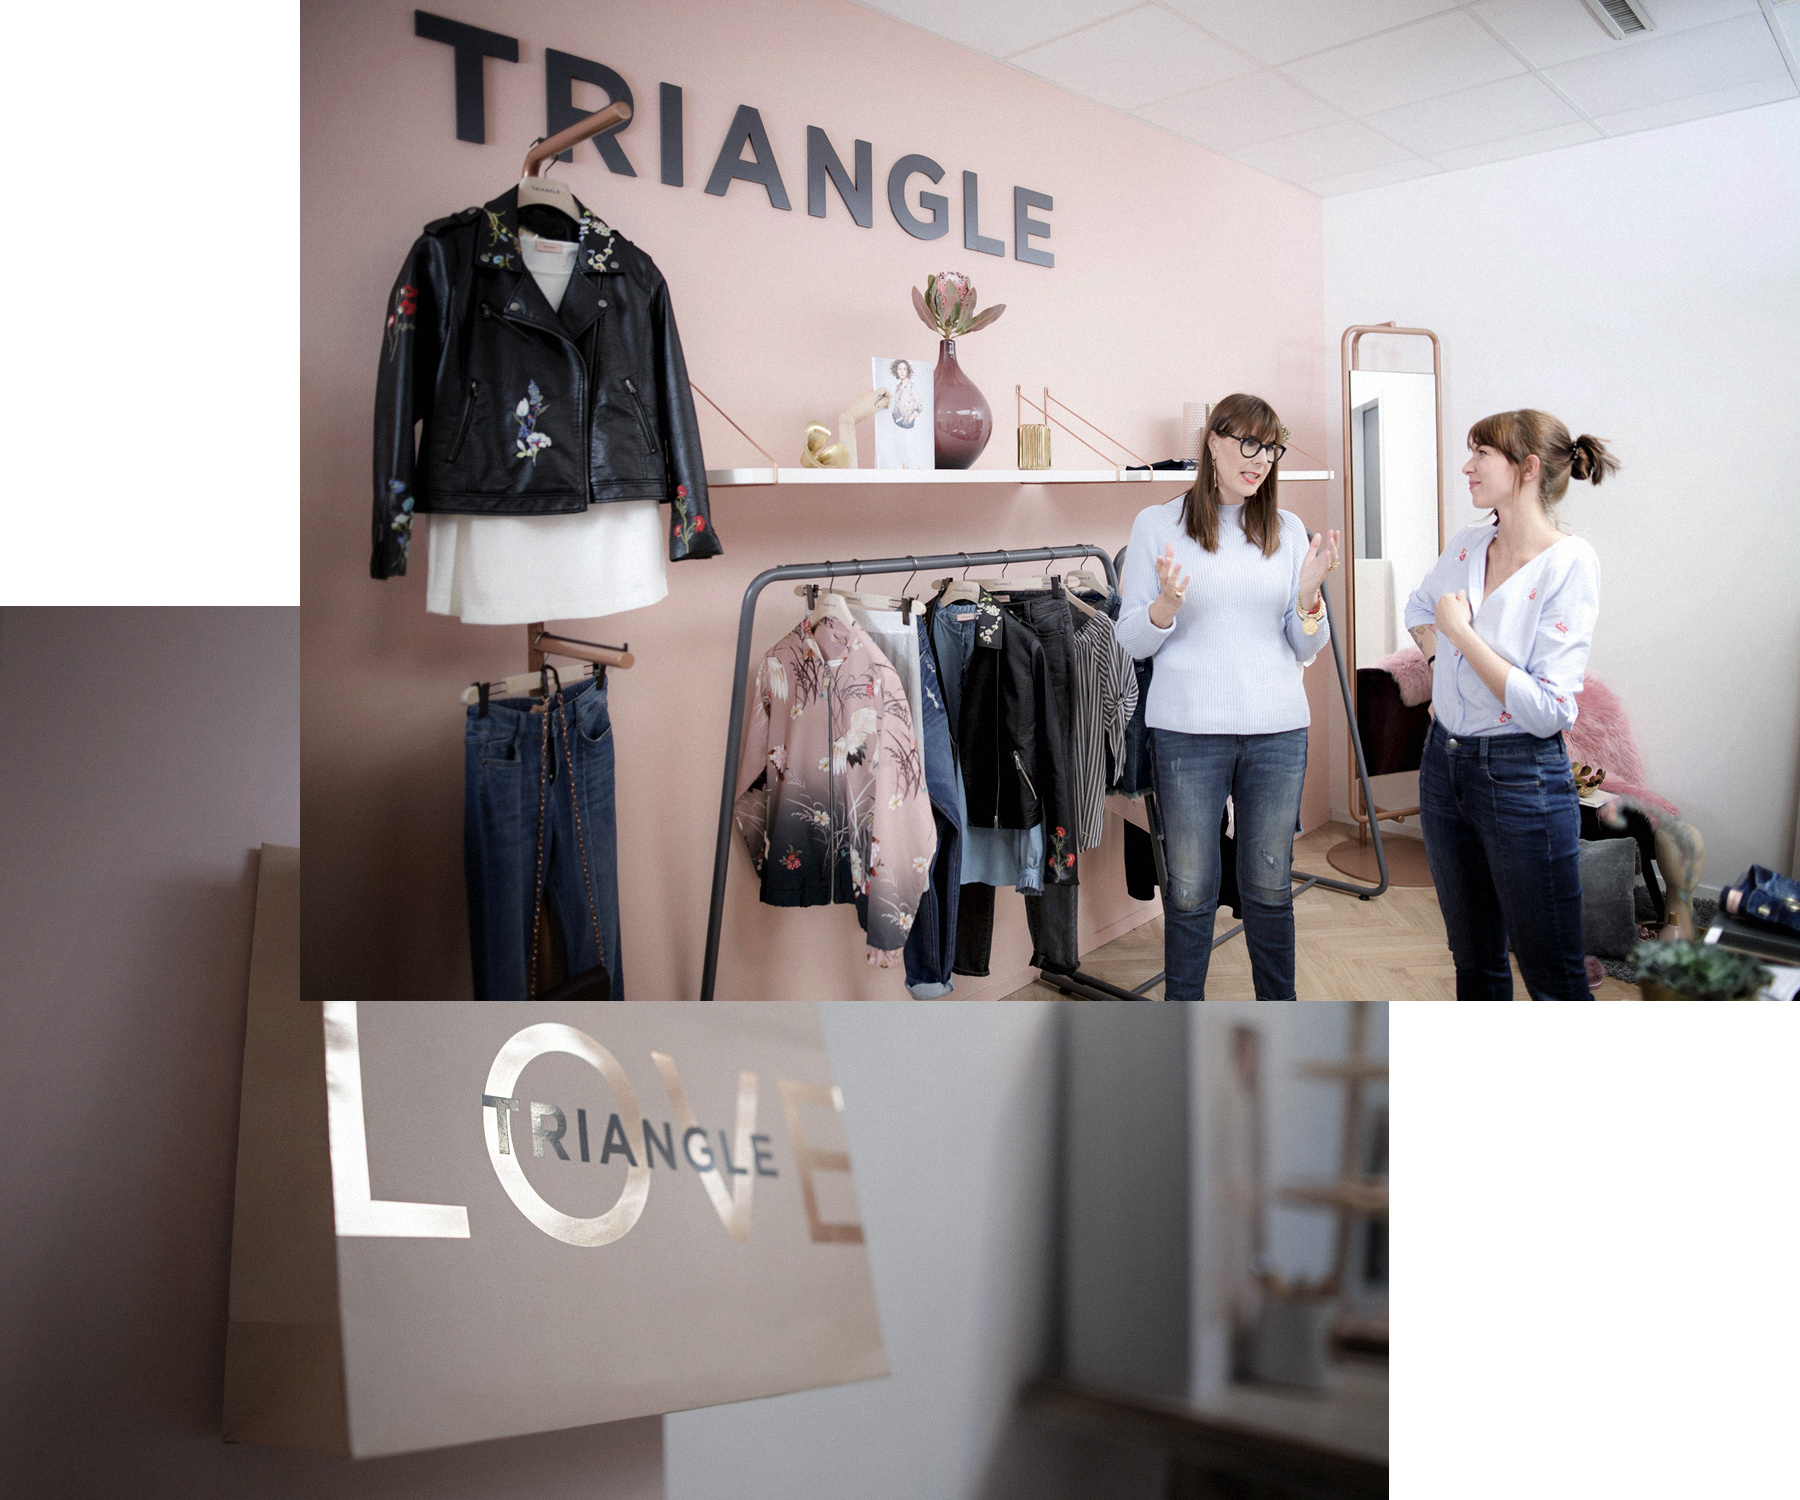 triangle interview business for fashion girls talk fashionblogger rosegold grey minimal scandi style interior brunette bangs cute denim style baby blue cats & dogs modeblog  düsseldorf germany styleblogger outfitblogger ricarda schernus max bechmann 2